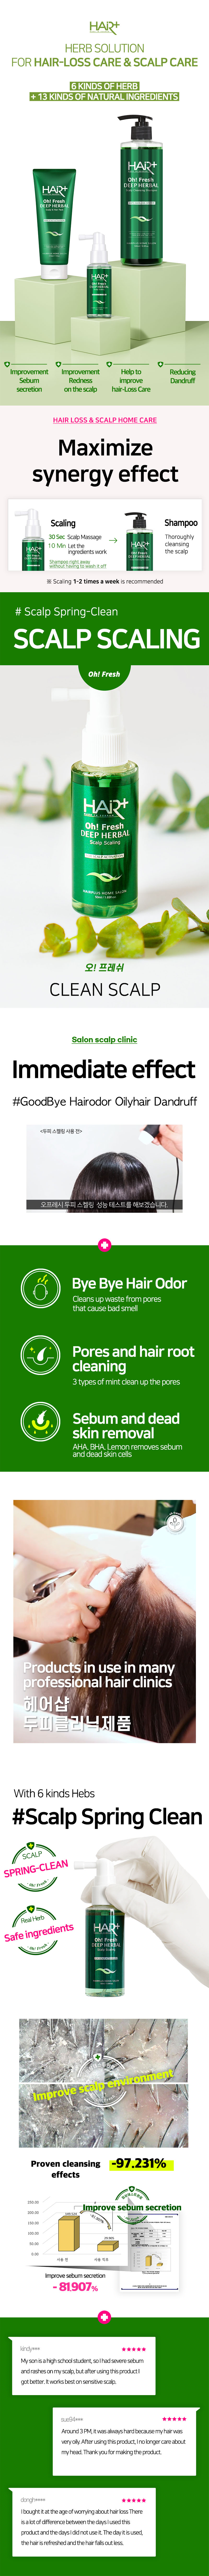 HAIRPLUS, Oh! fresh deep herbal scalp scaling